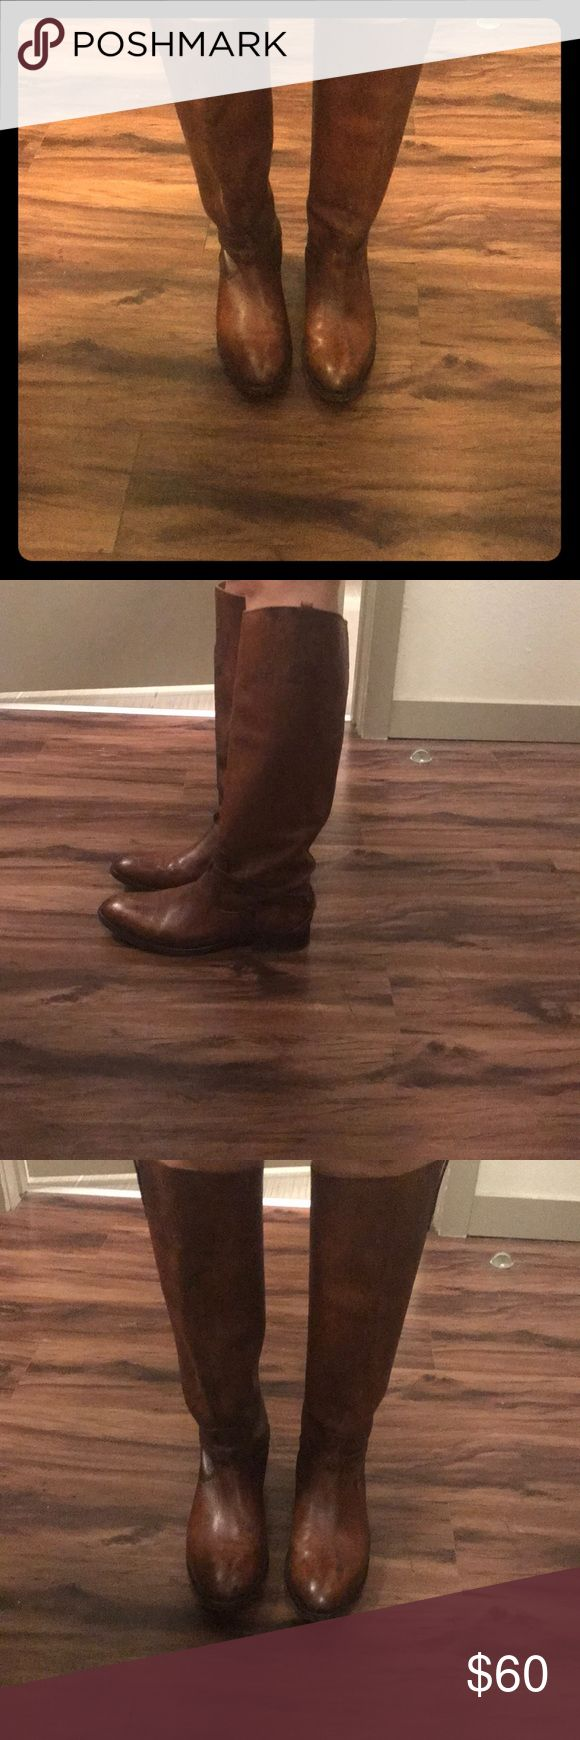 Frye Riding Boots Brown Frye riding boots in great condition! Frye Shoes Winter & Rain Boots